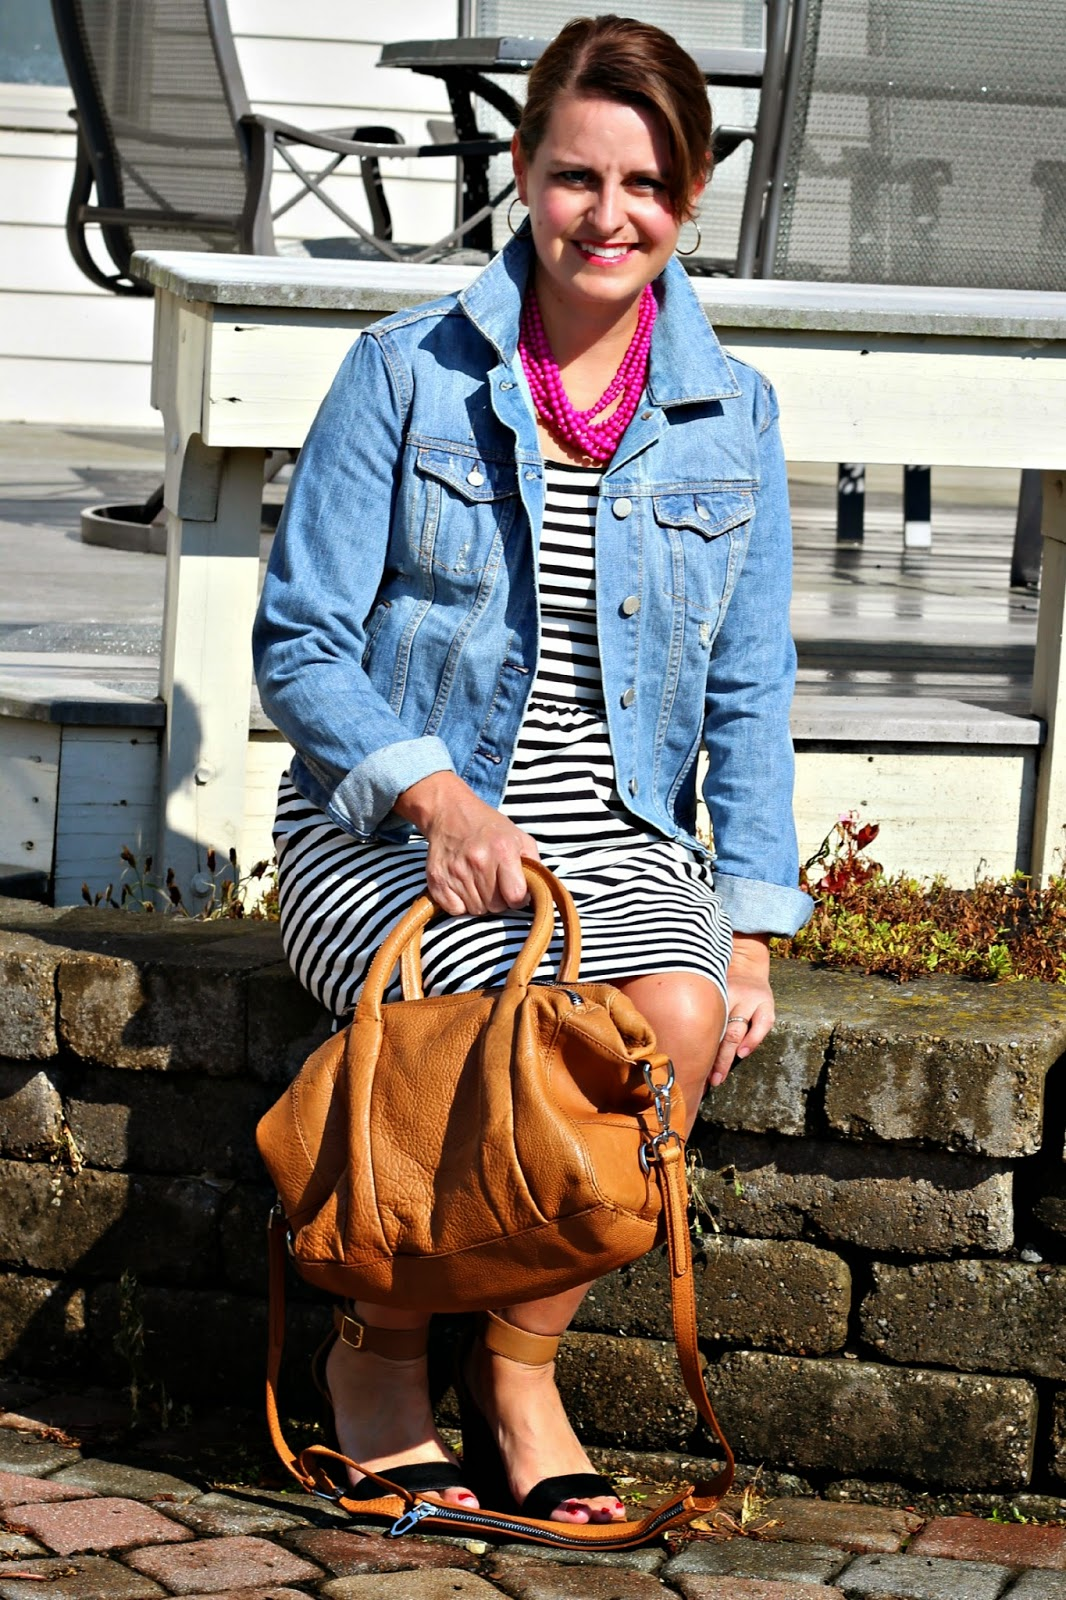 Old Navy black and white fit and flare dress, Gap denim jean jacket, Zara cognac purse, Old Navy 2 tone block heel sandals, pink layered necklac